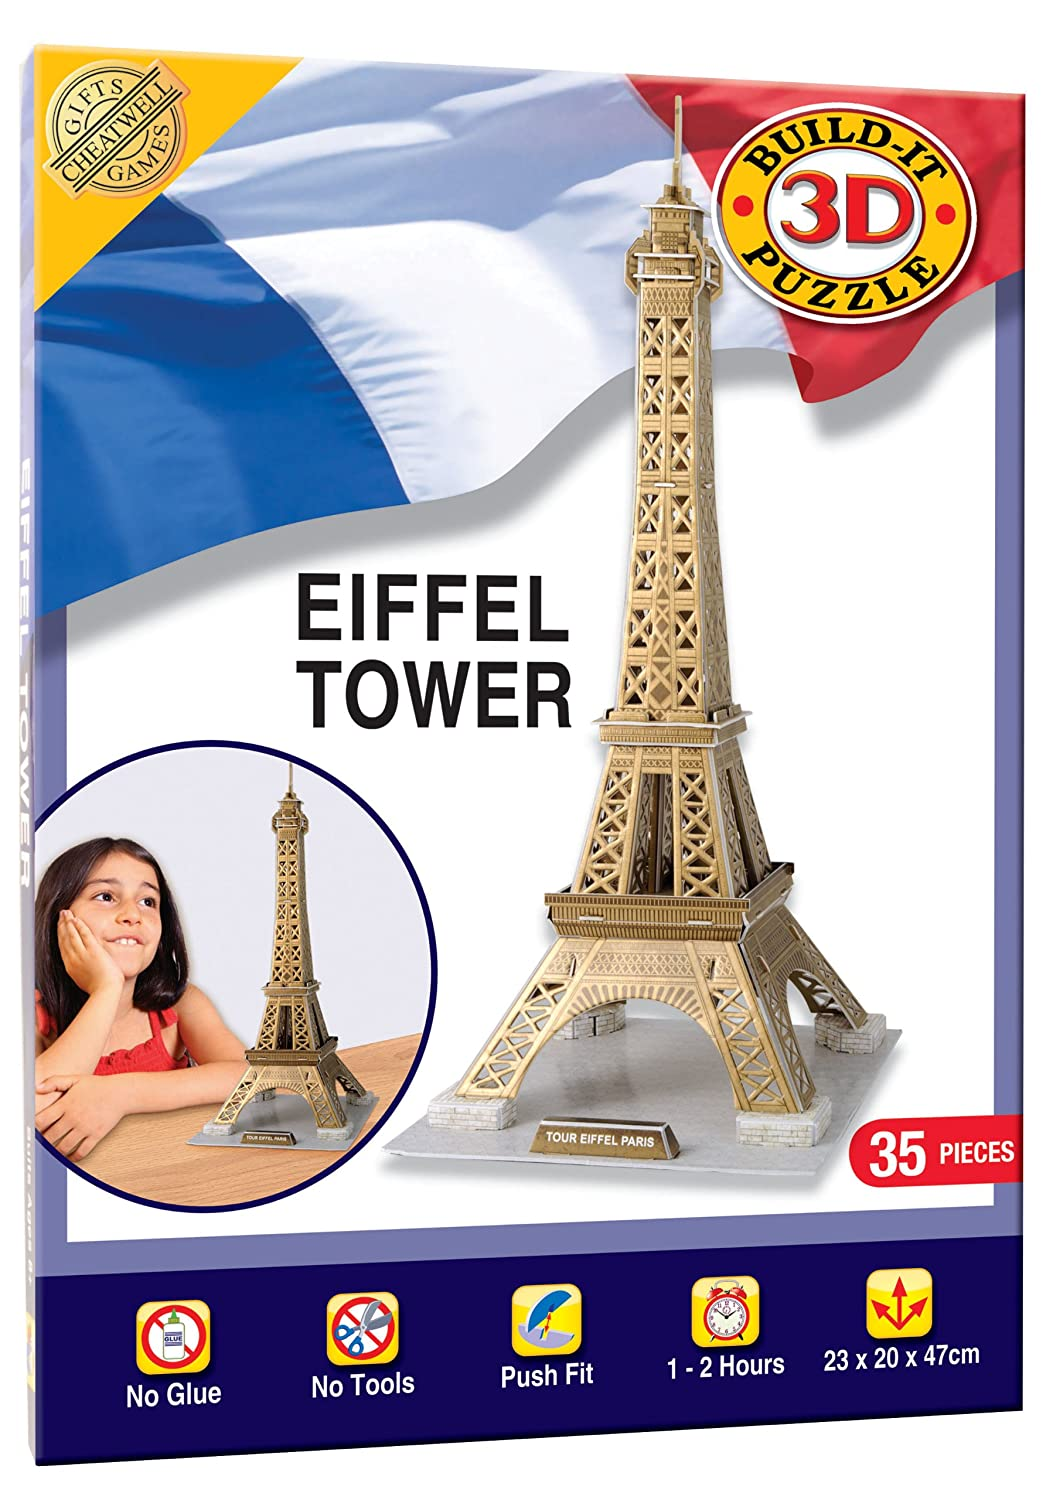 Cheatwell Games Eiffel Tower Build-Your-Own Giant 3D Kit Cheatwell Gamees 2200 CKCBE3D Architecture